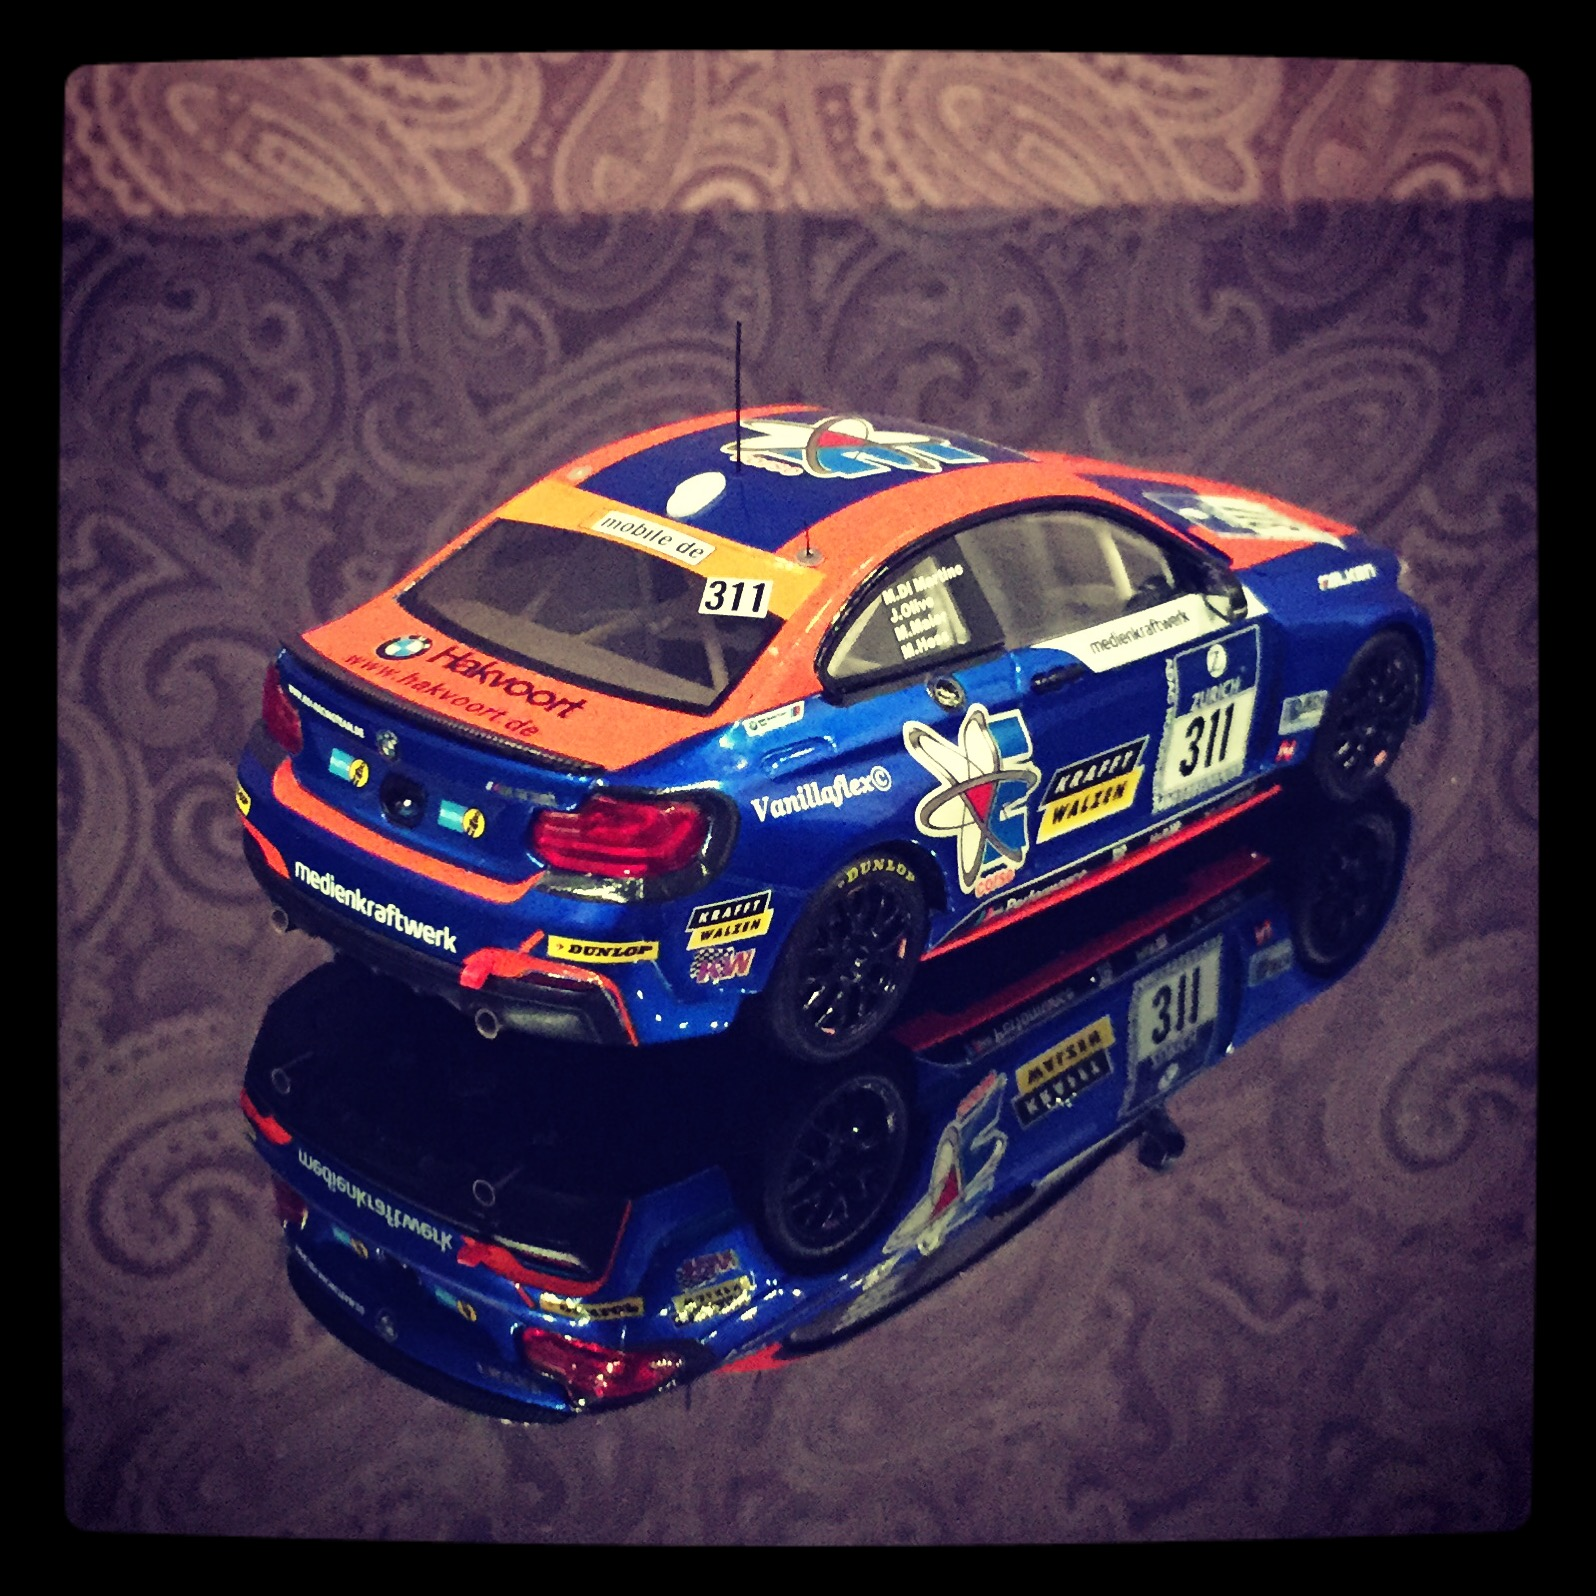 BMW M235i (F22) racing, team Medienkrafwerk, #311 Di Martino/Olivo/Maier/Hess, 24h Nurburgring 2014, le 1 of 514pcs. (Minichamps)